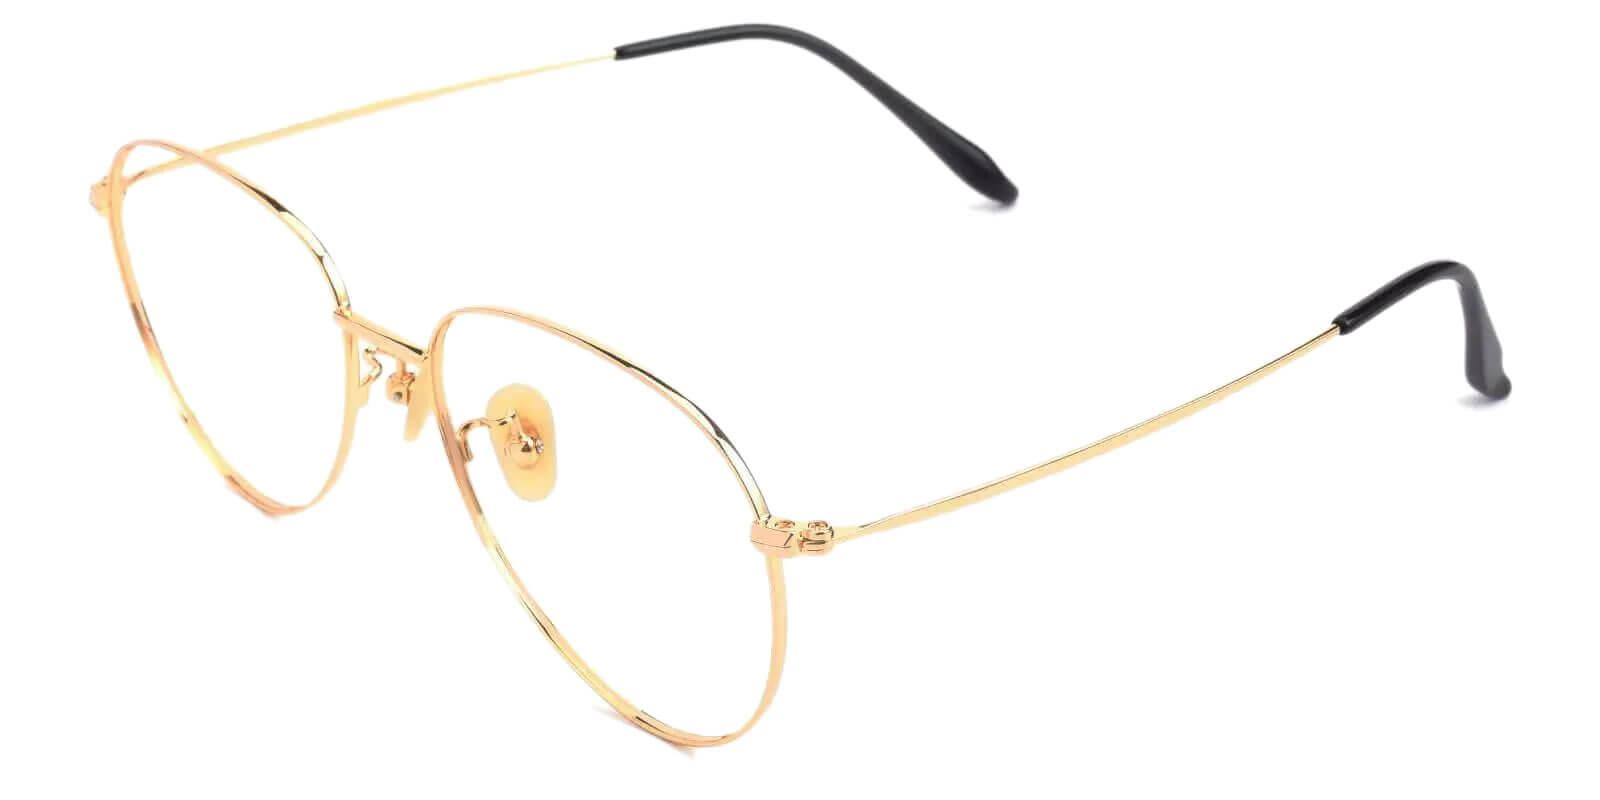 Nepal Gold Titanium Lightweight , NosePads , Eyeglasses Frames from ABBE Glasses